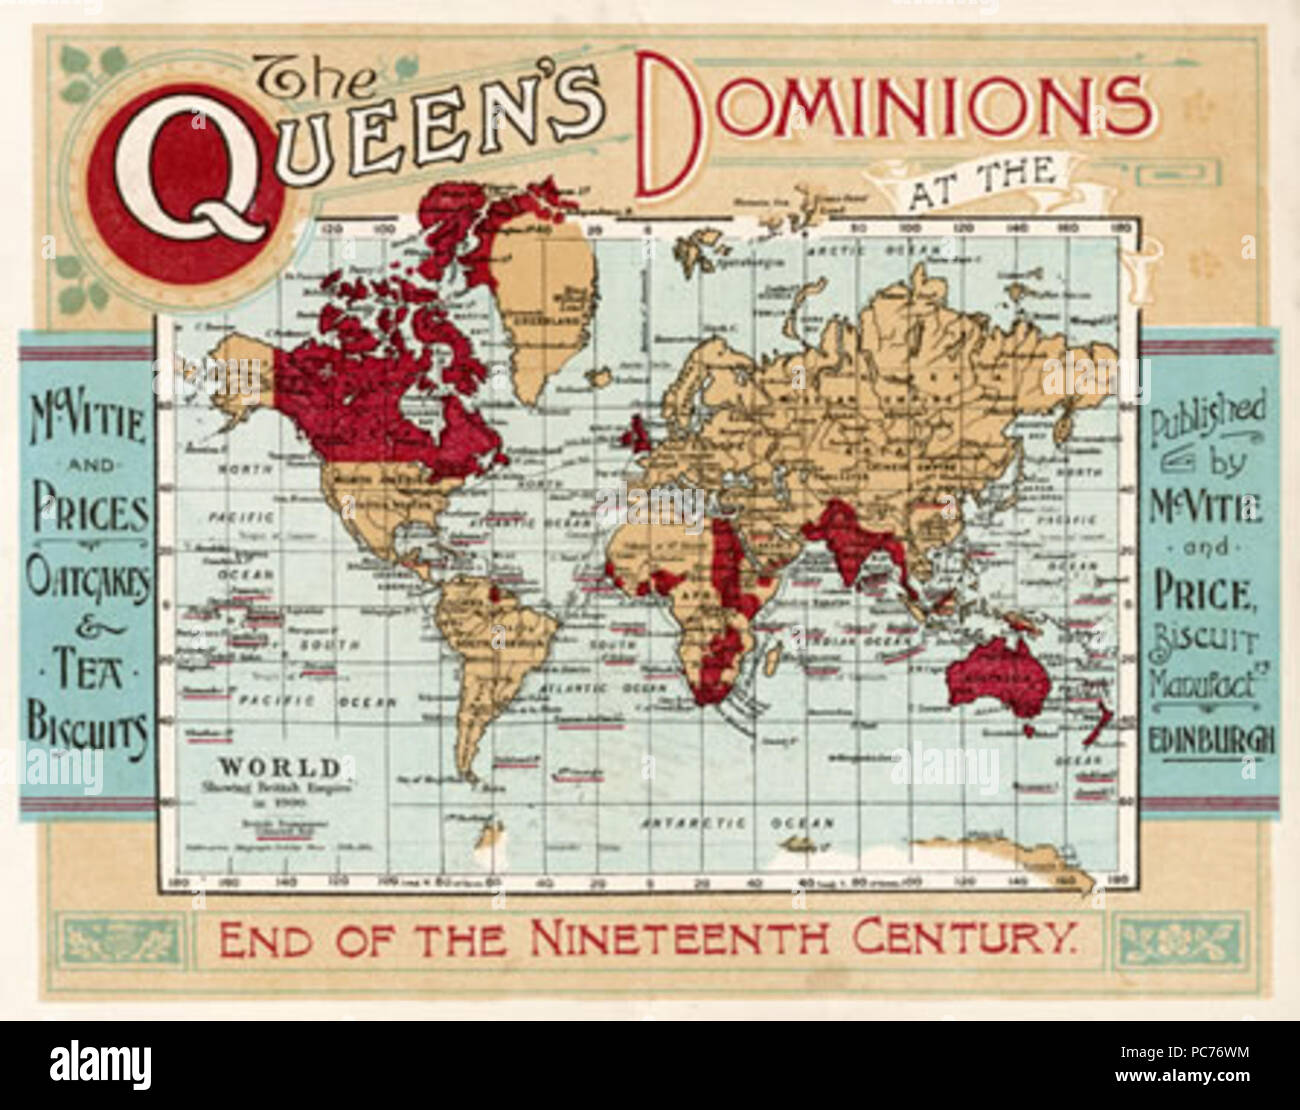 A map of the world, showing  the British Empire coloured  in red at the end of the  nineteenth century.      Date: late 19th century 602 The-queens-dominions - Stock Image